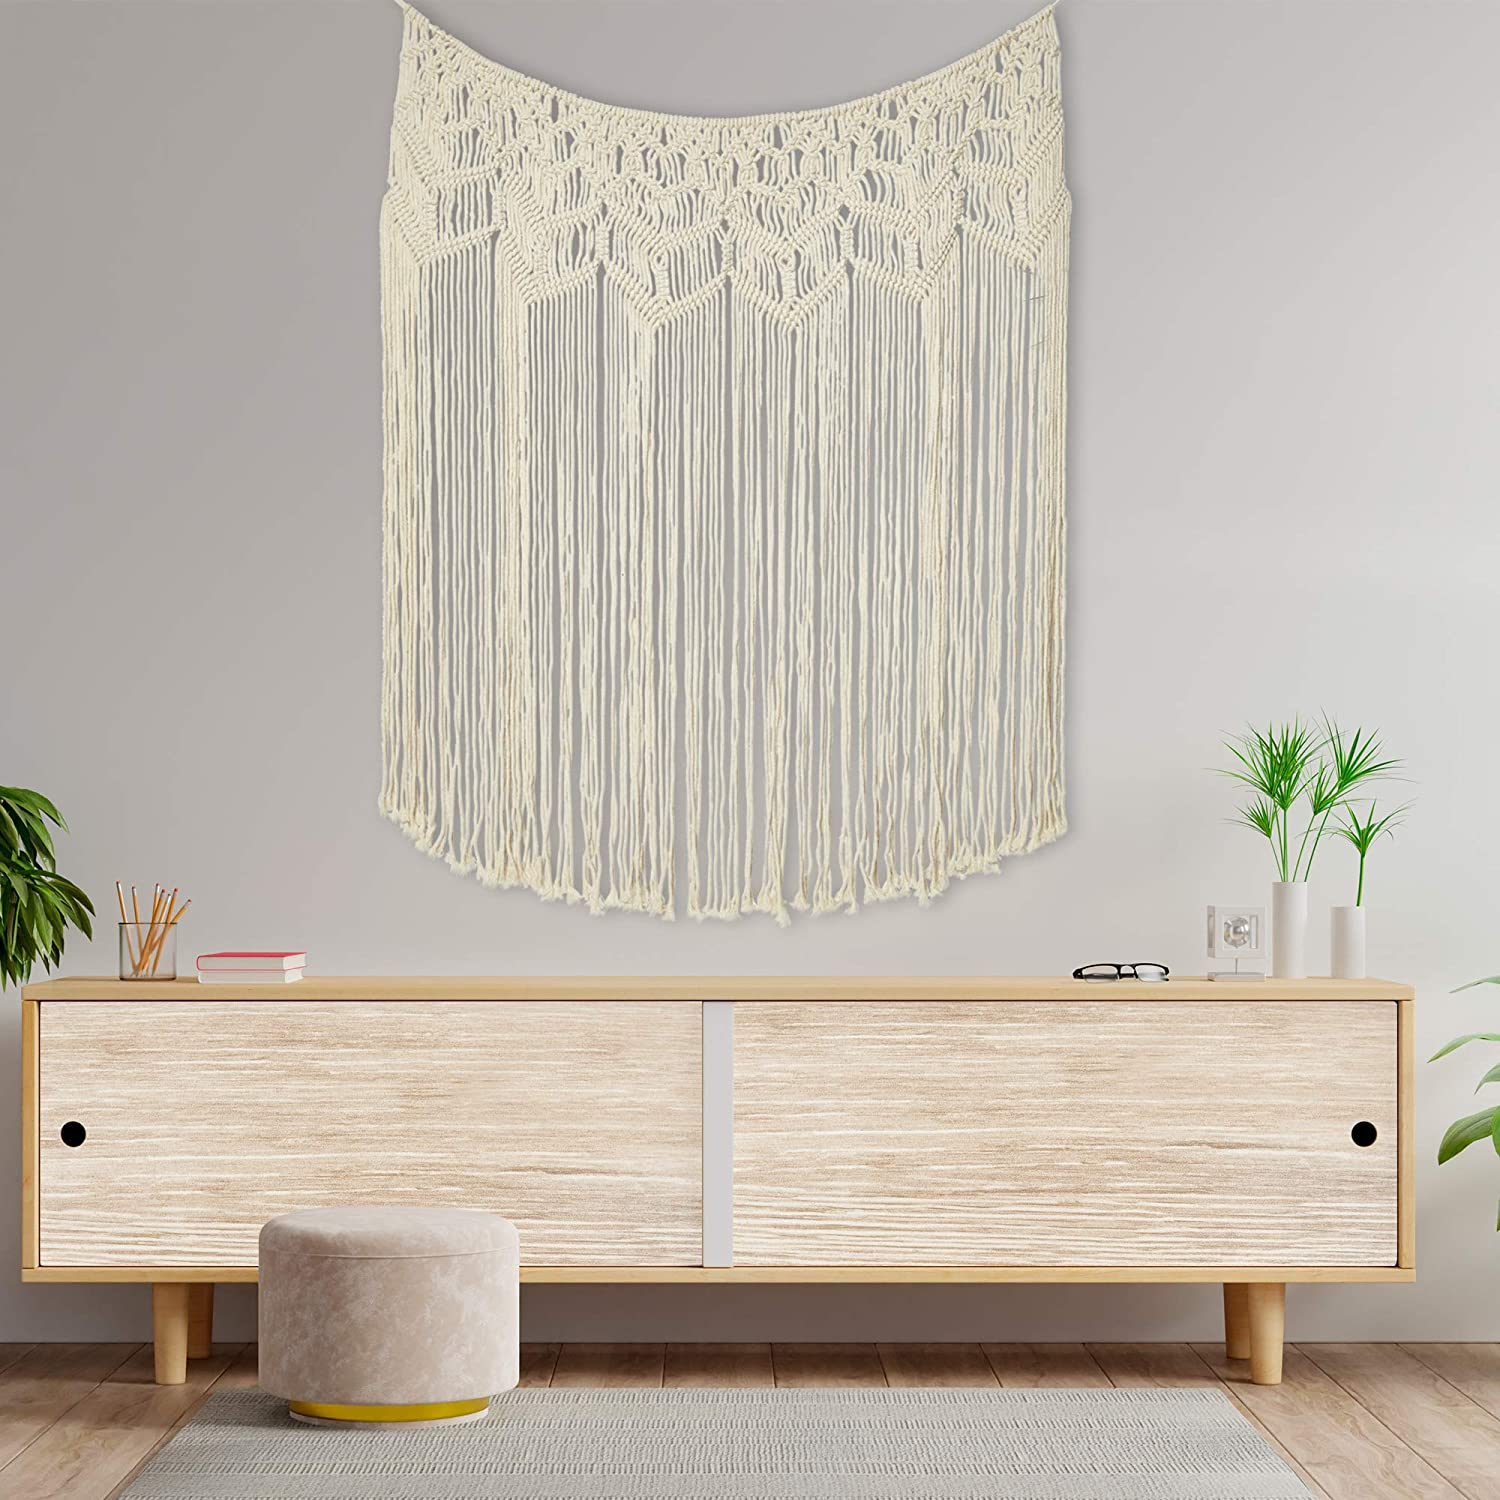 TB WorldMarketing Large Macrame Wall Hanging Curtain - Boho-Chic Home Decor - Beautiful White Decorations for Bedroom,Nursery,Room - Backdrop for Weddings, Party- Headboard - With Plant Hanger, 36x48